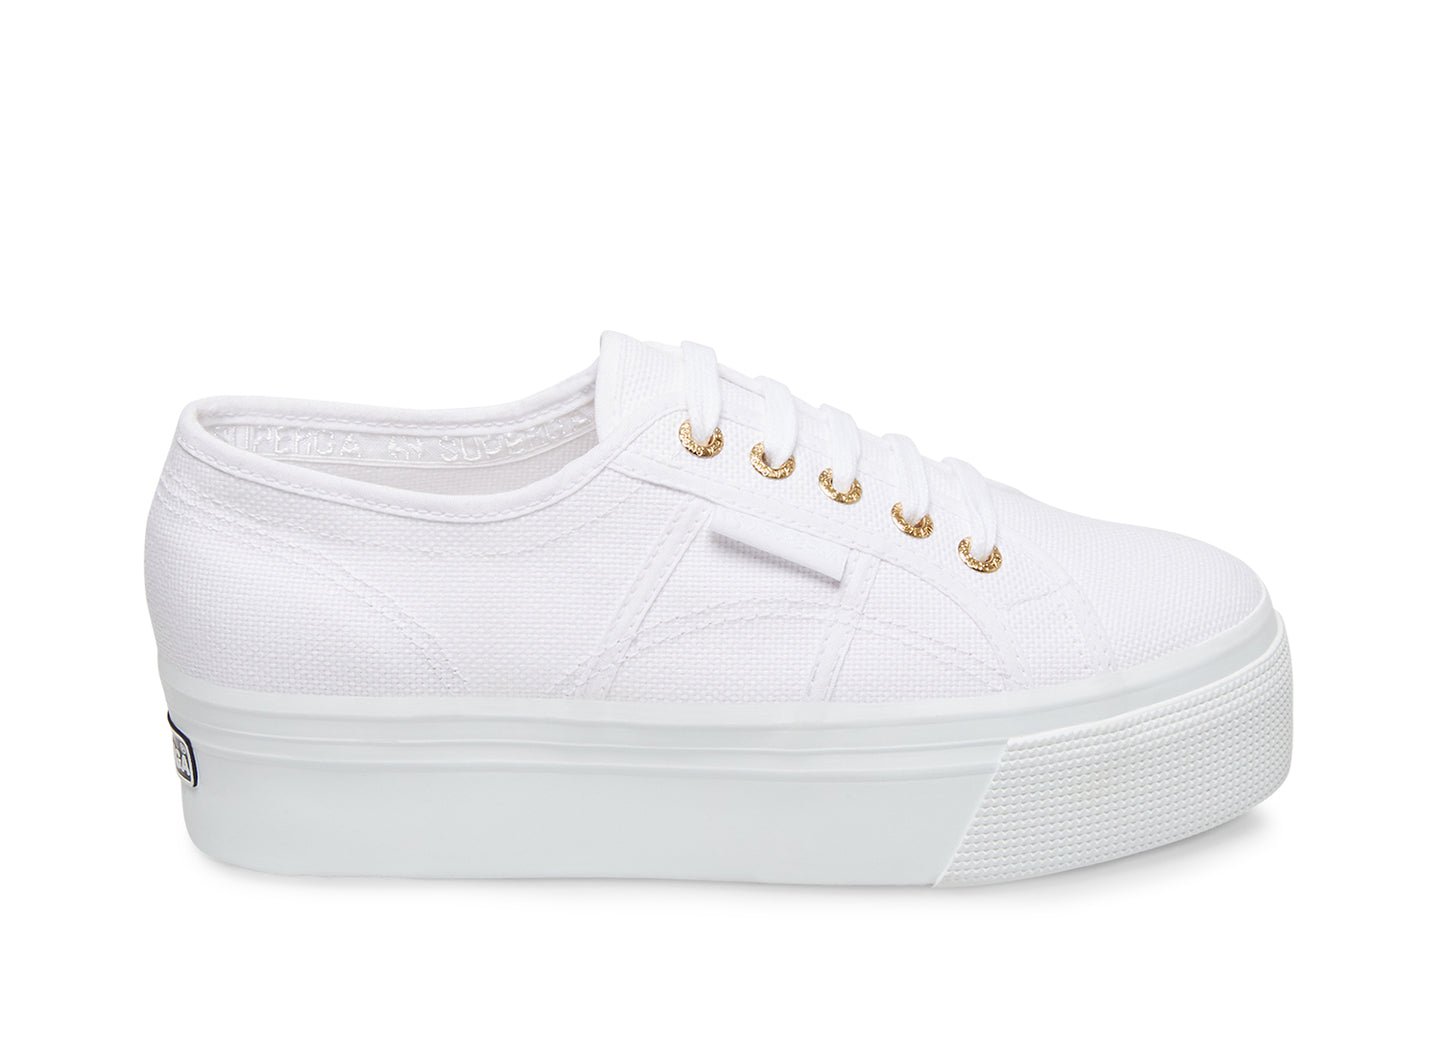 2790 ACOTW WHITE-GOLD LEATHER - Women's